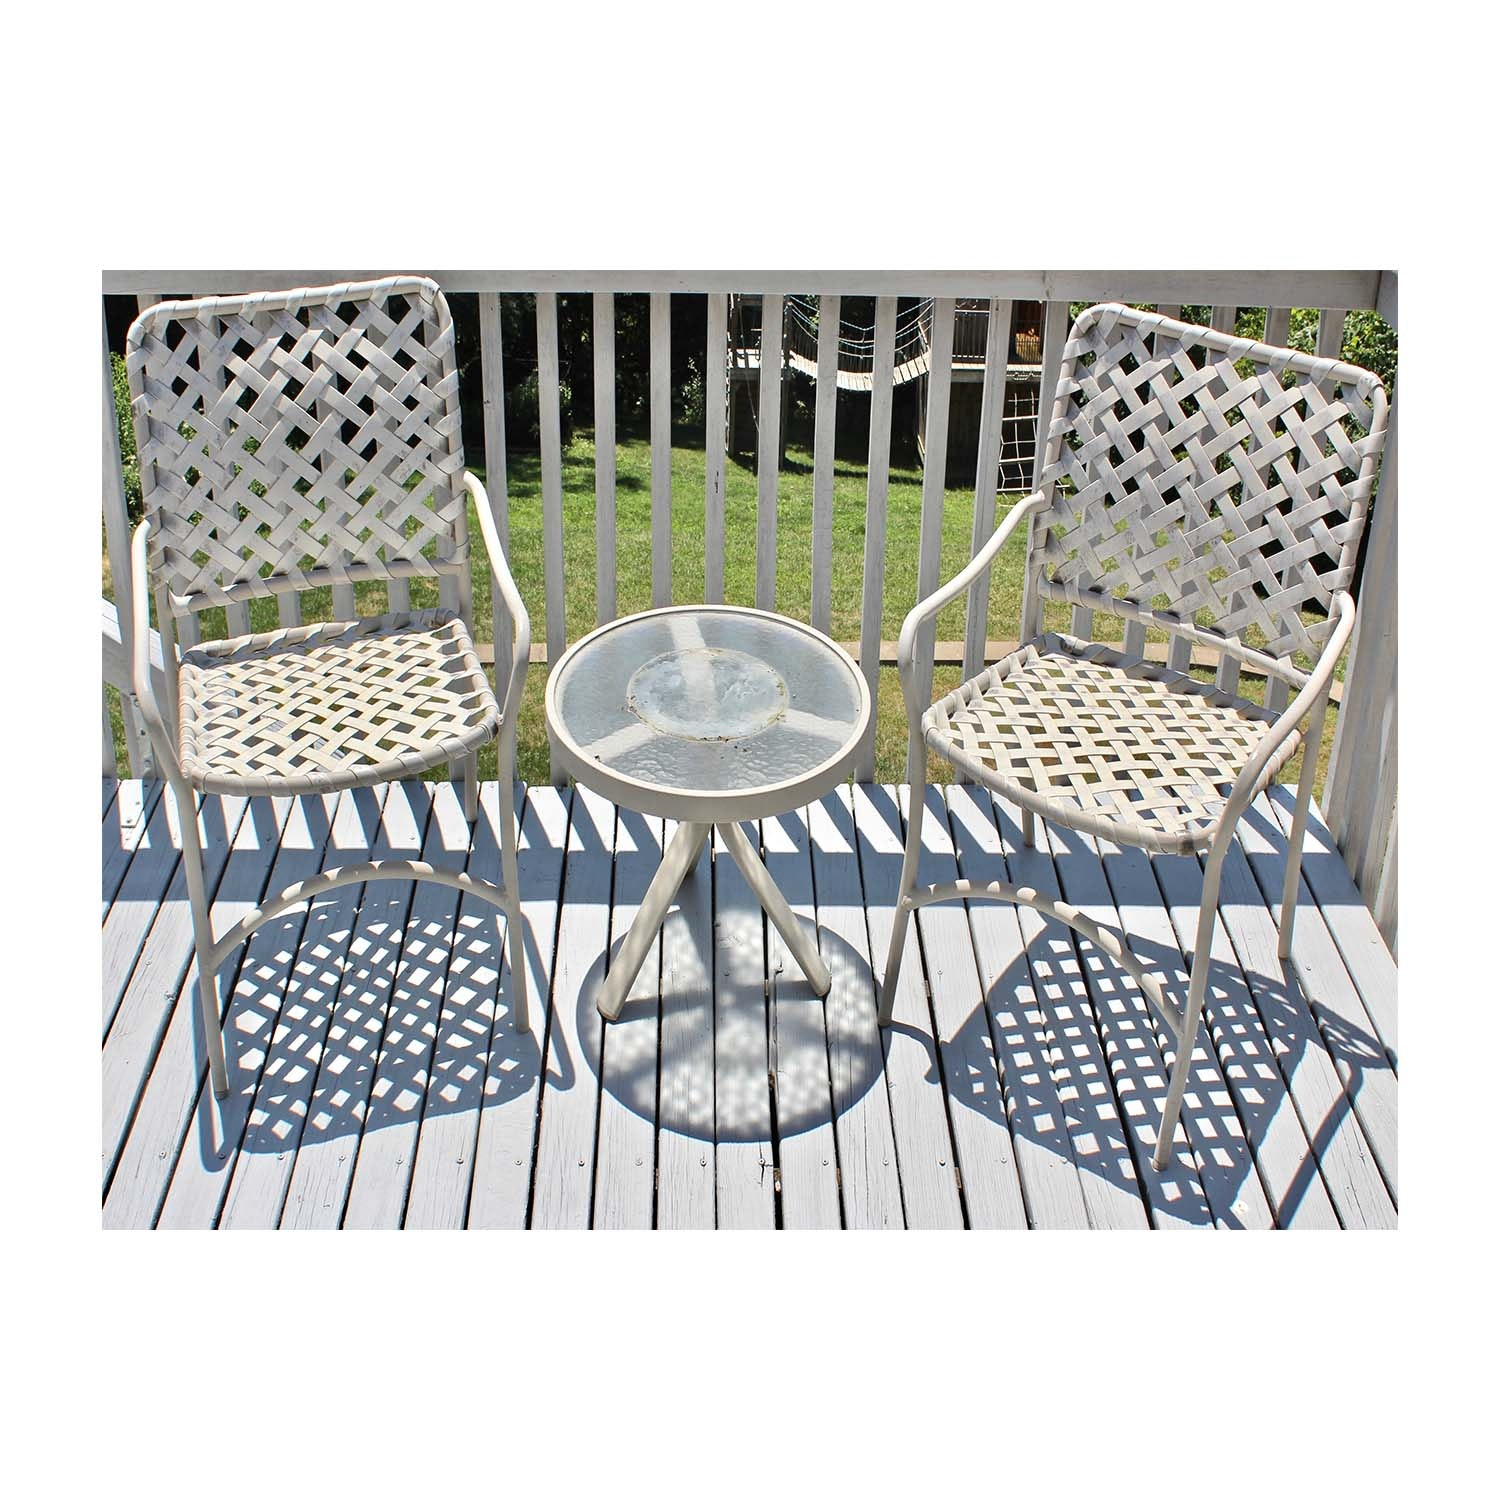 Woven Metal Patio Chairs and Table